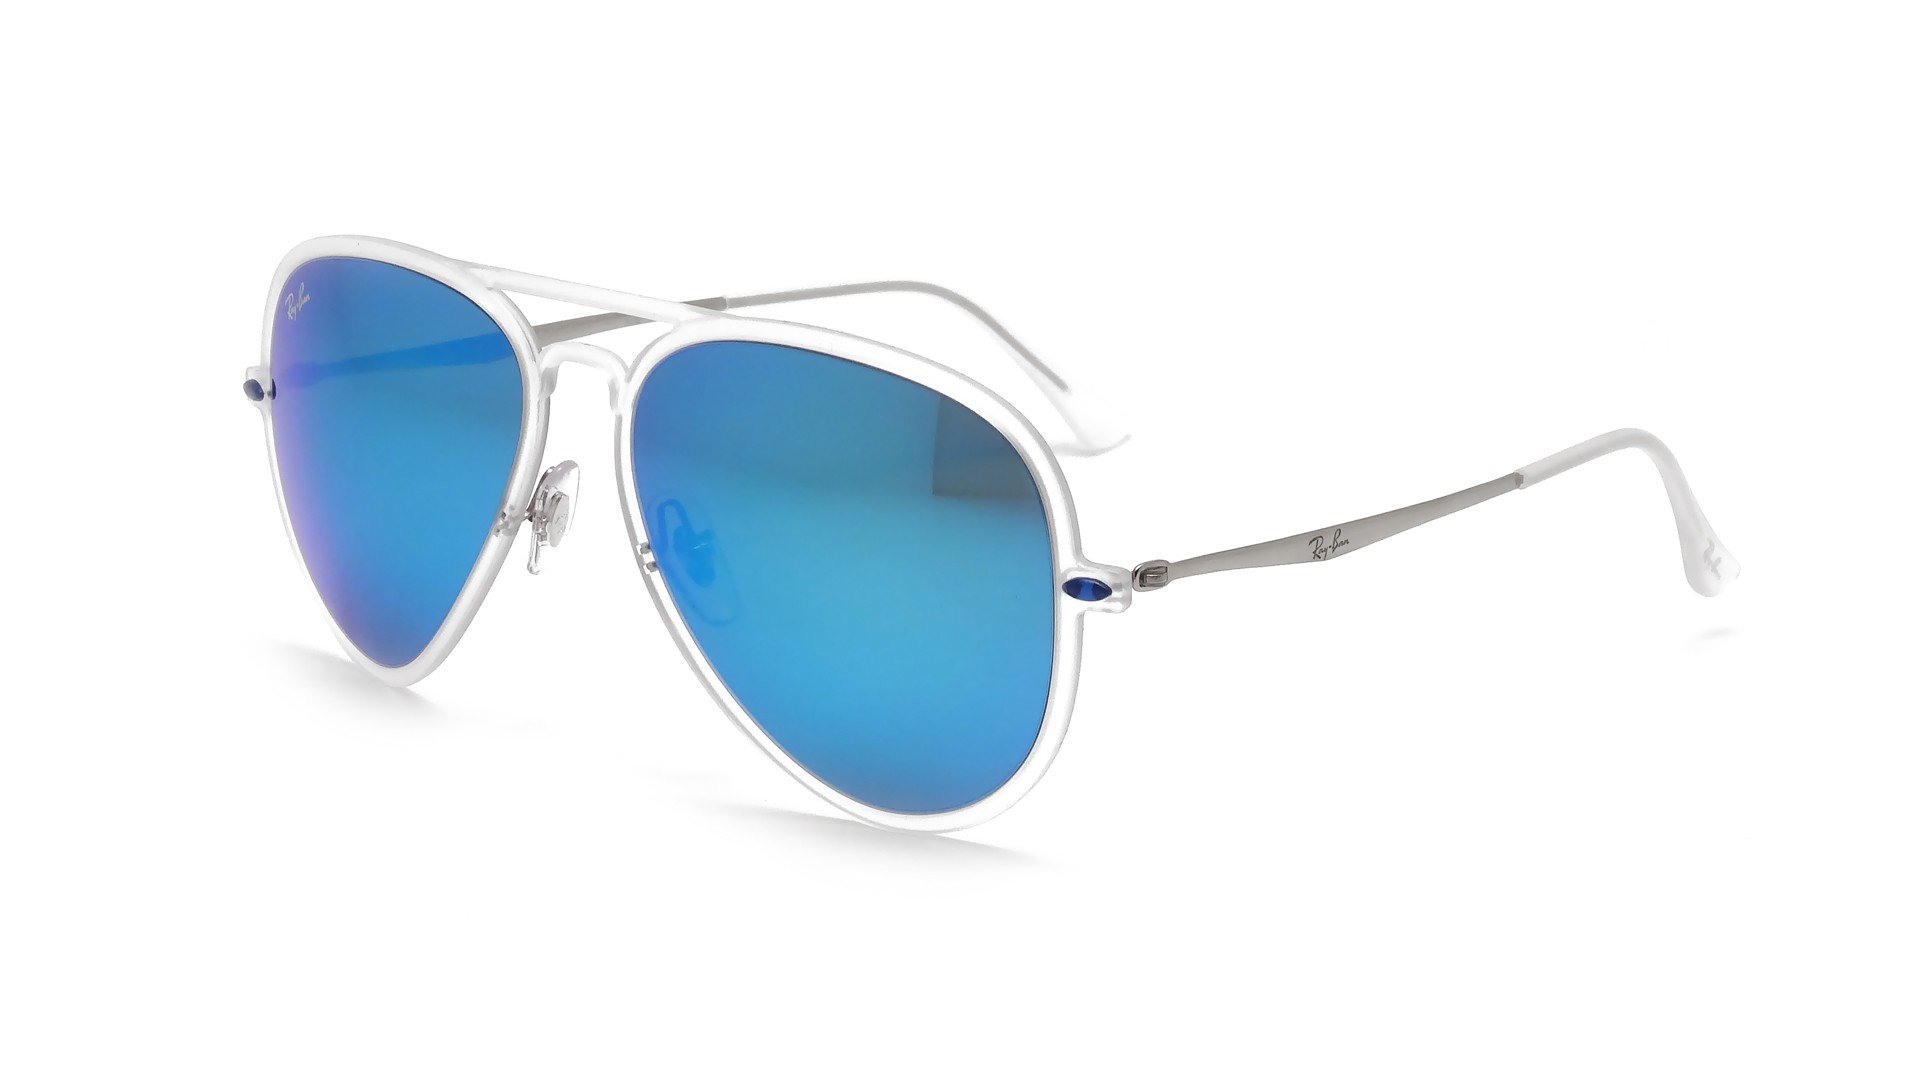 Ray Ban Aviator Light Ray Clear Matte Rb4211 646 55 56 17